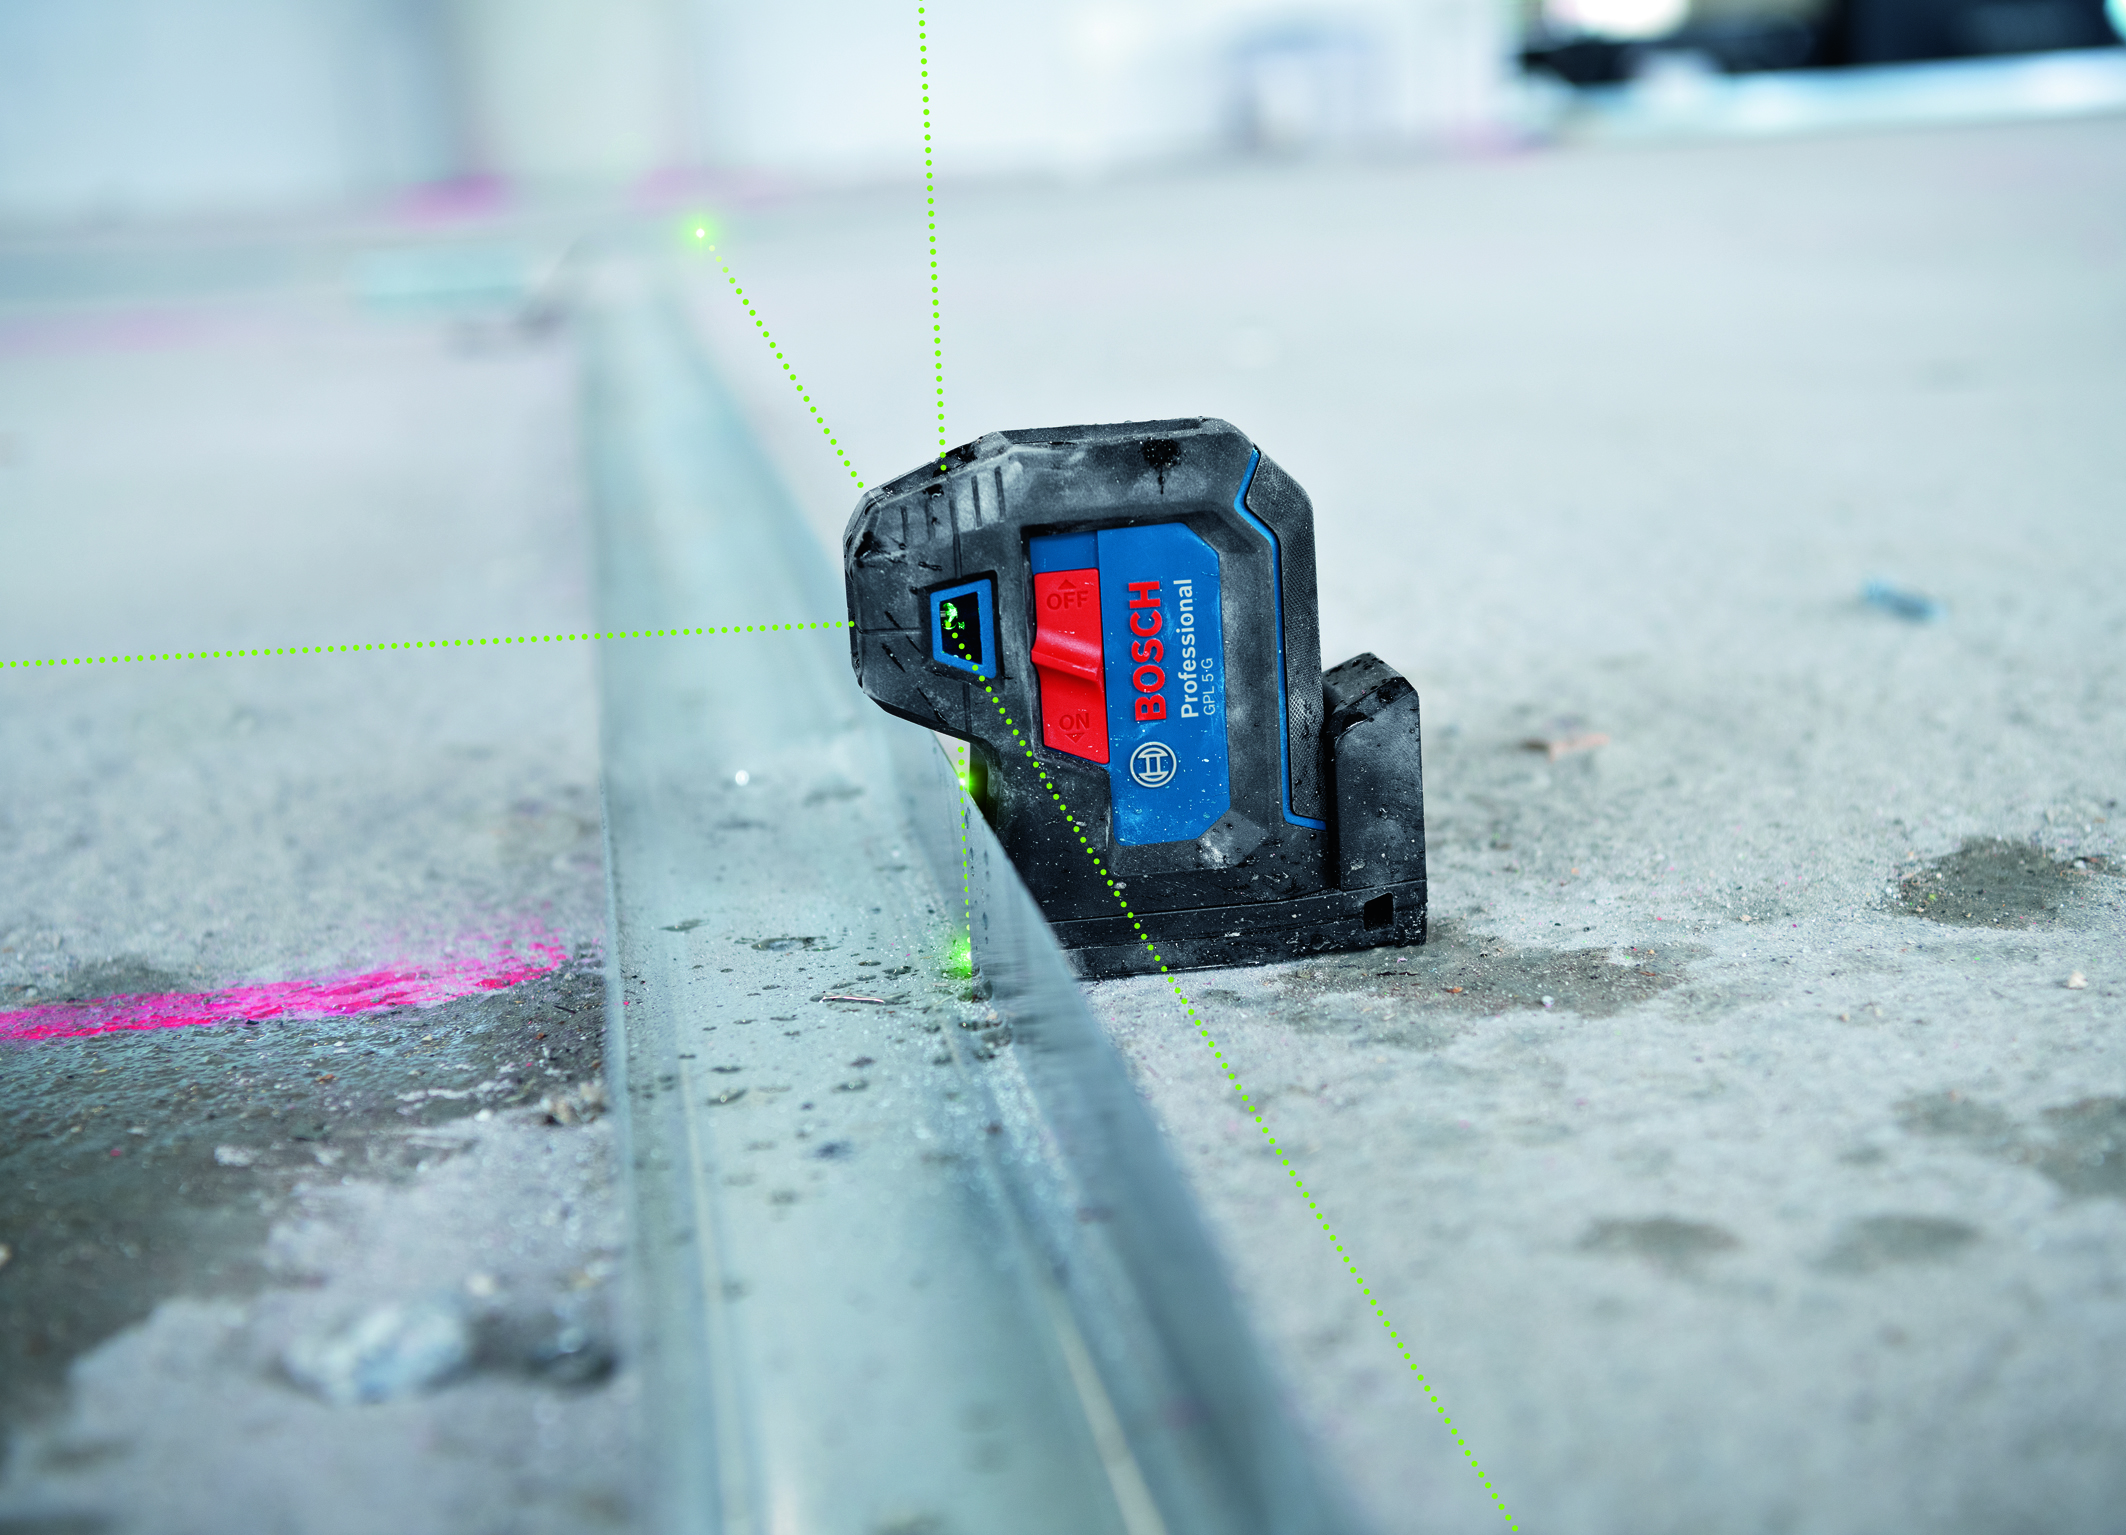 Easy handling due to an integrated rotating mount: New Bosch point laser generation for professionals